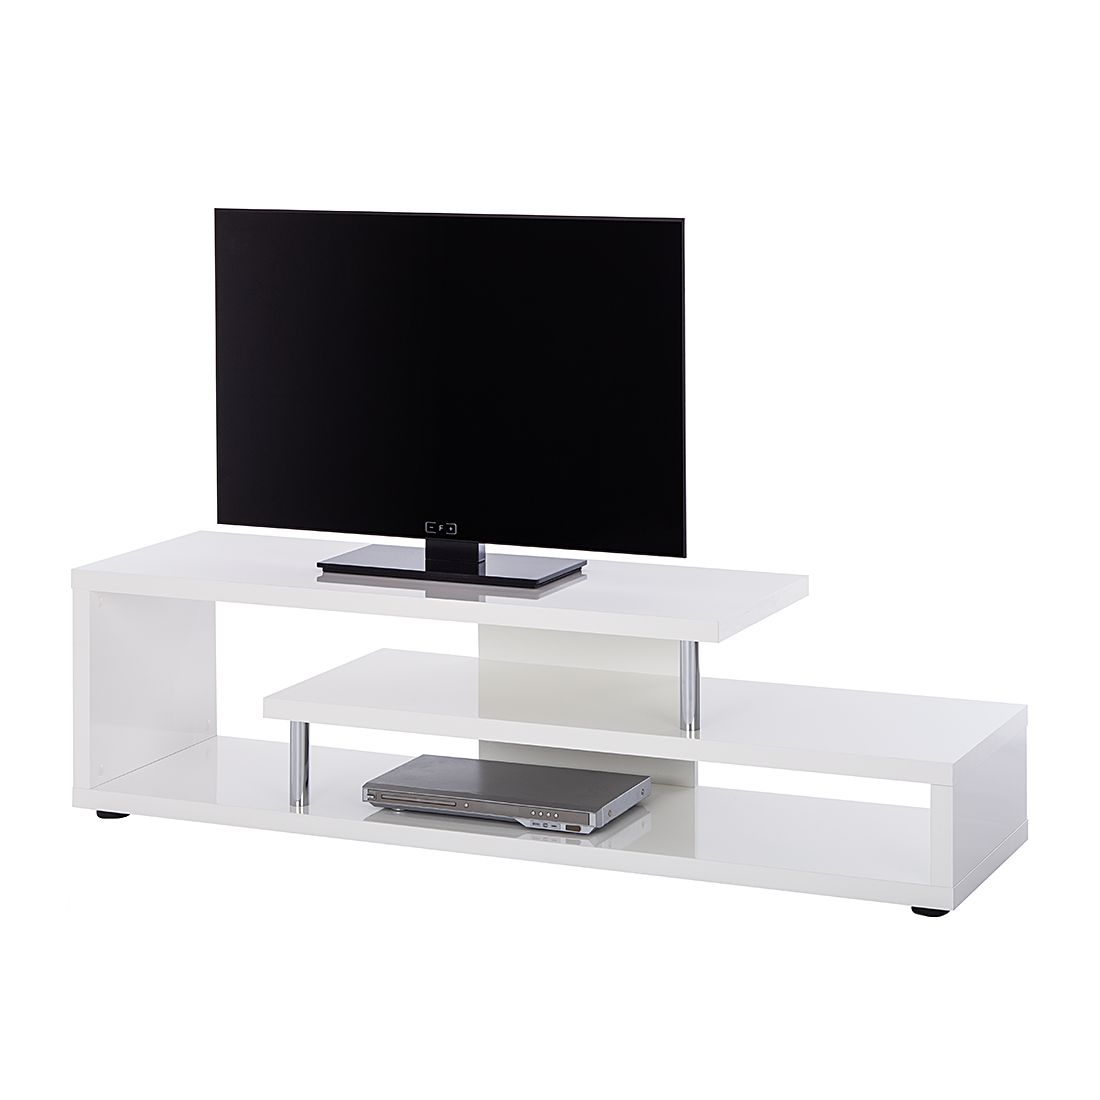 Mobile TV Wasco - Bianco lucido, roomscape